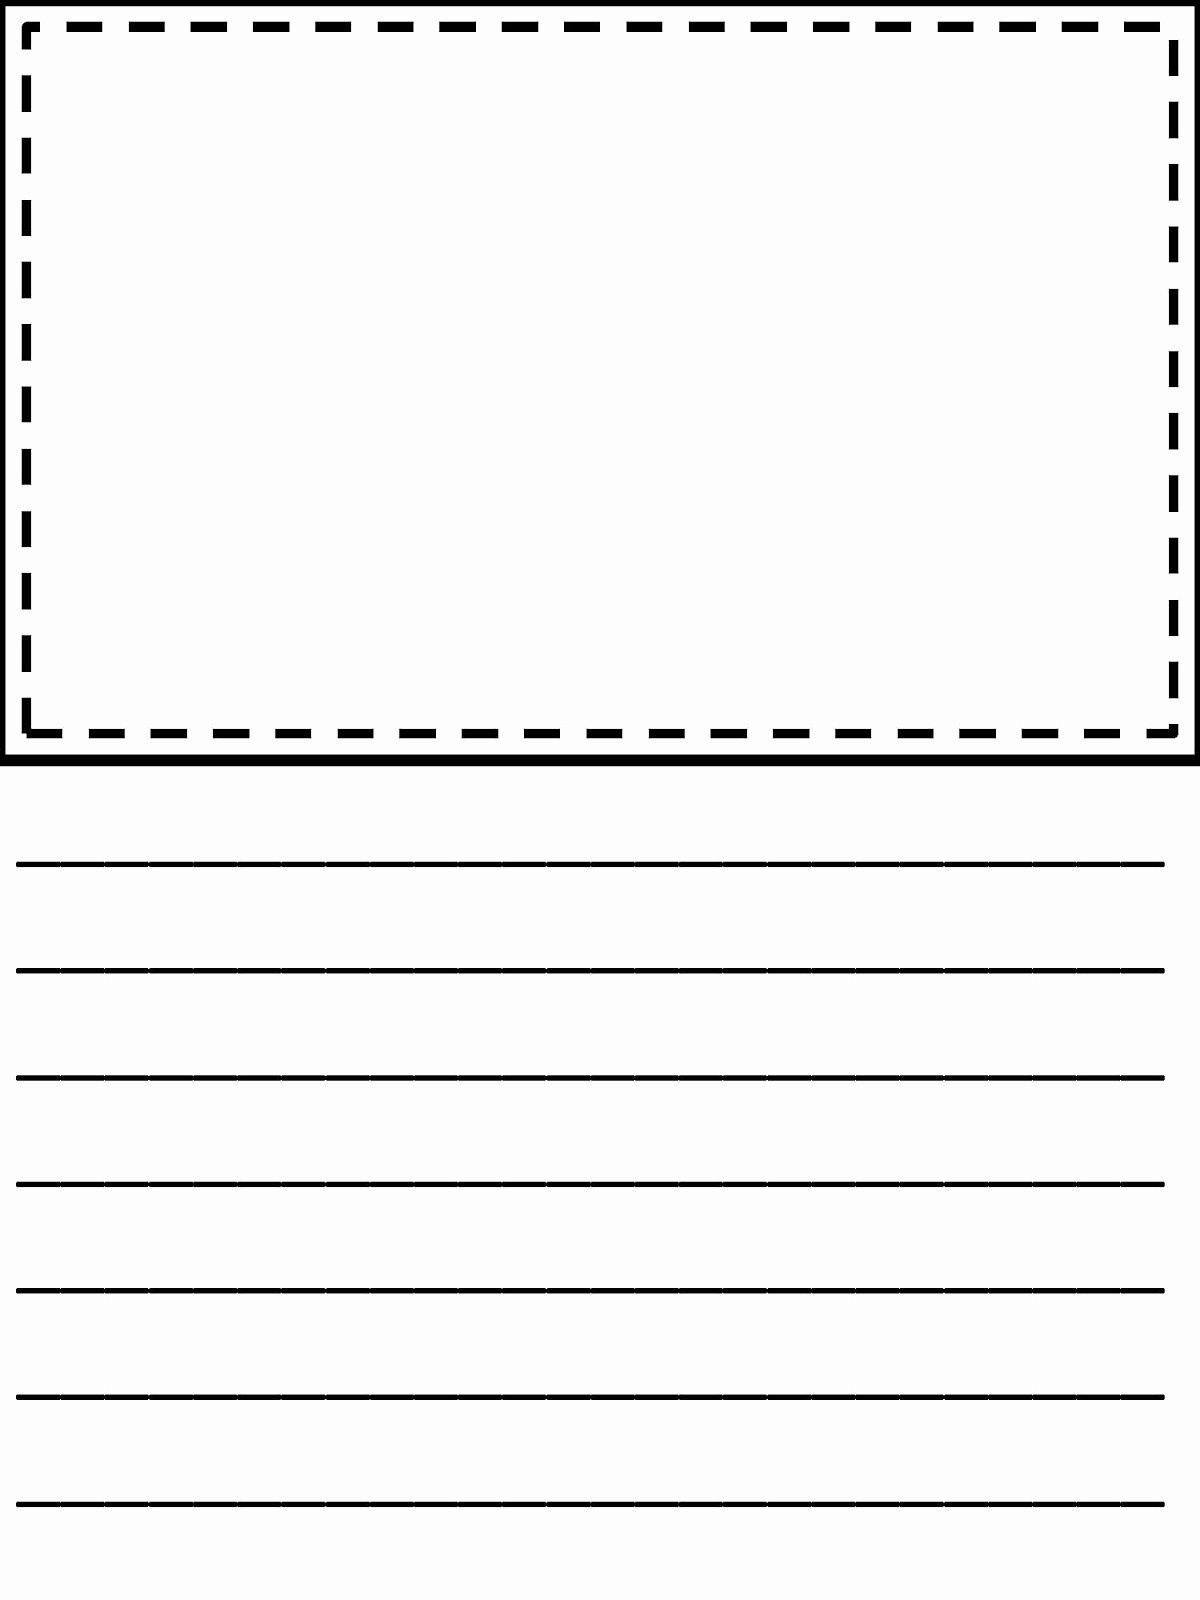 Writing Paper For First Grade With Picture Box - Floss Papers - Free Printable Writing Paper With Picture Box